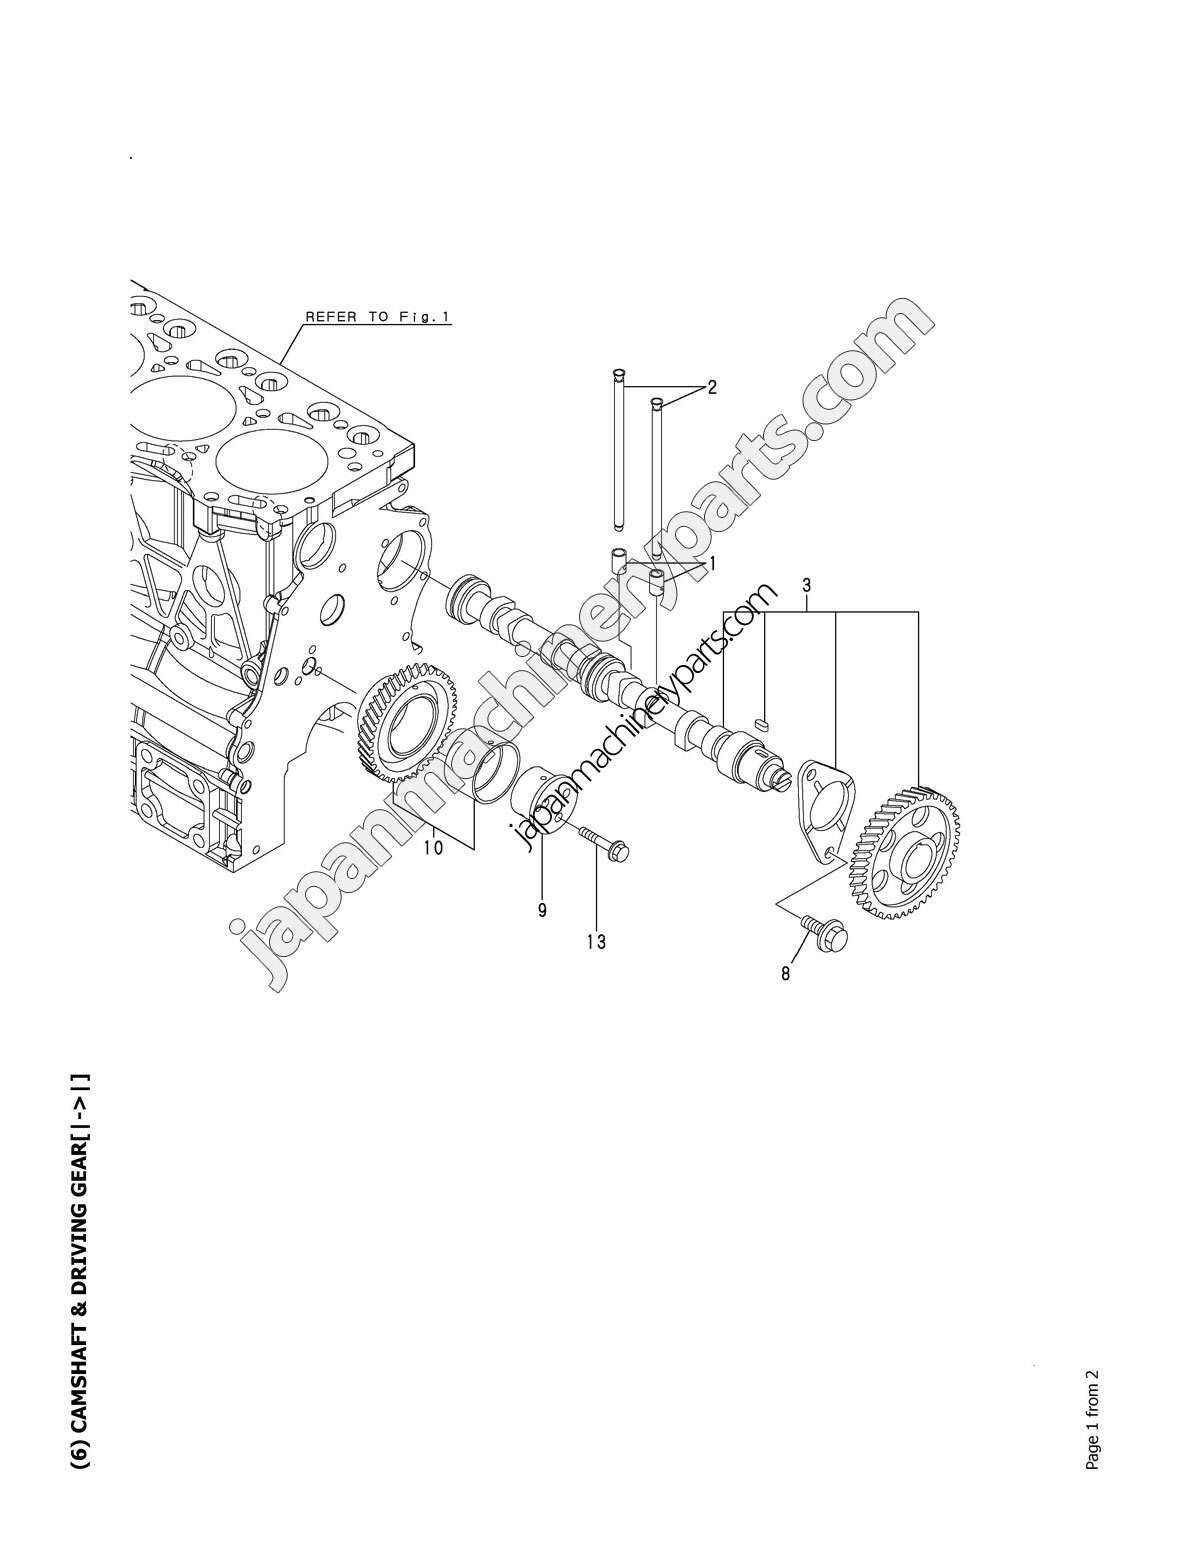 2008 ford focus parts catalog html